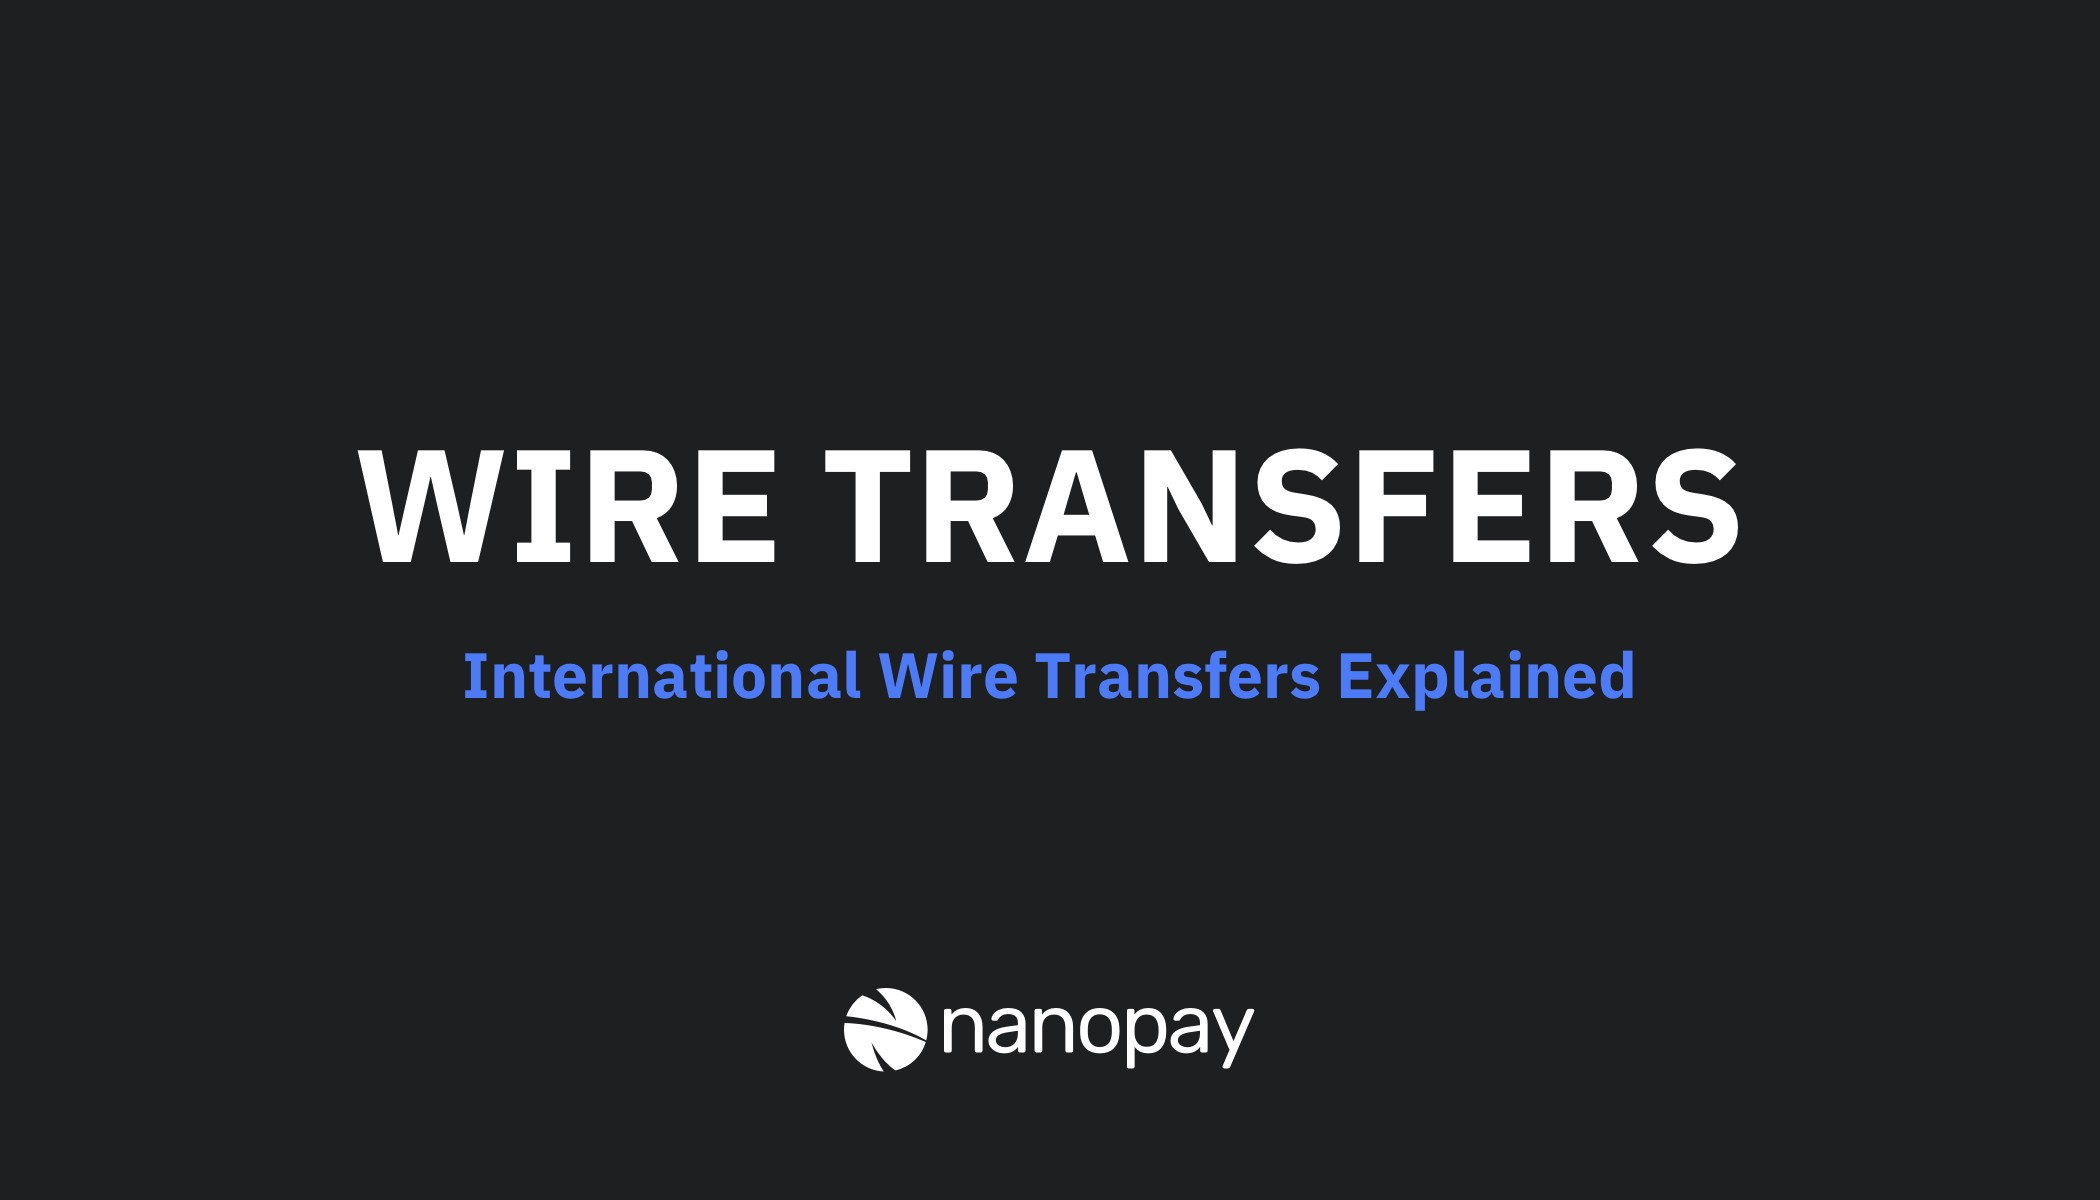 Explained International Wire Transfers